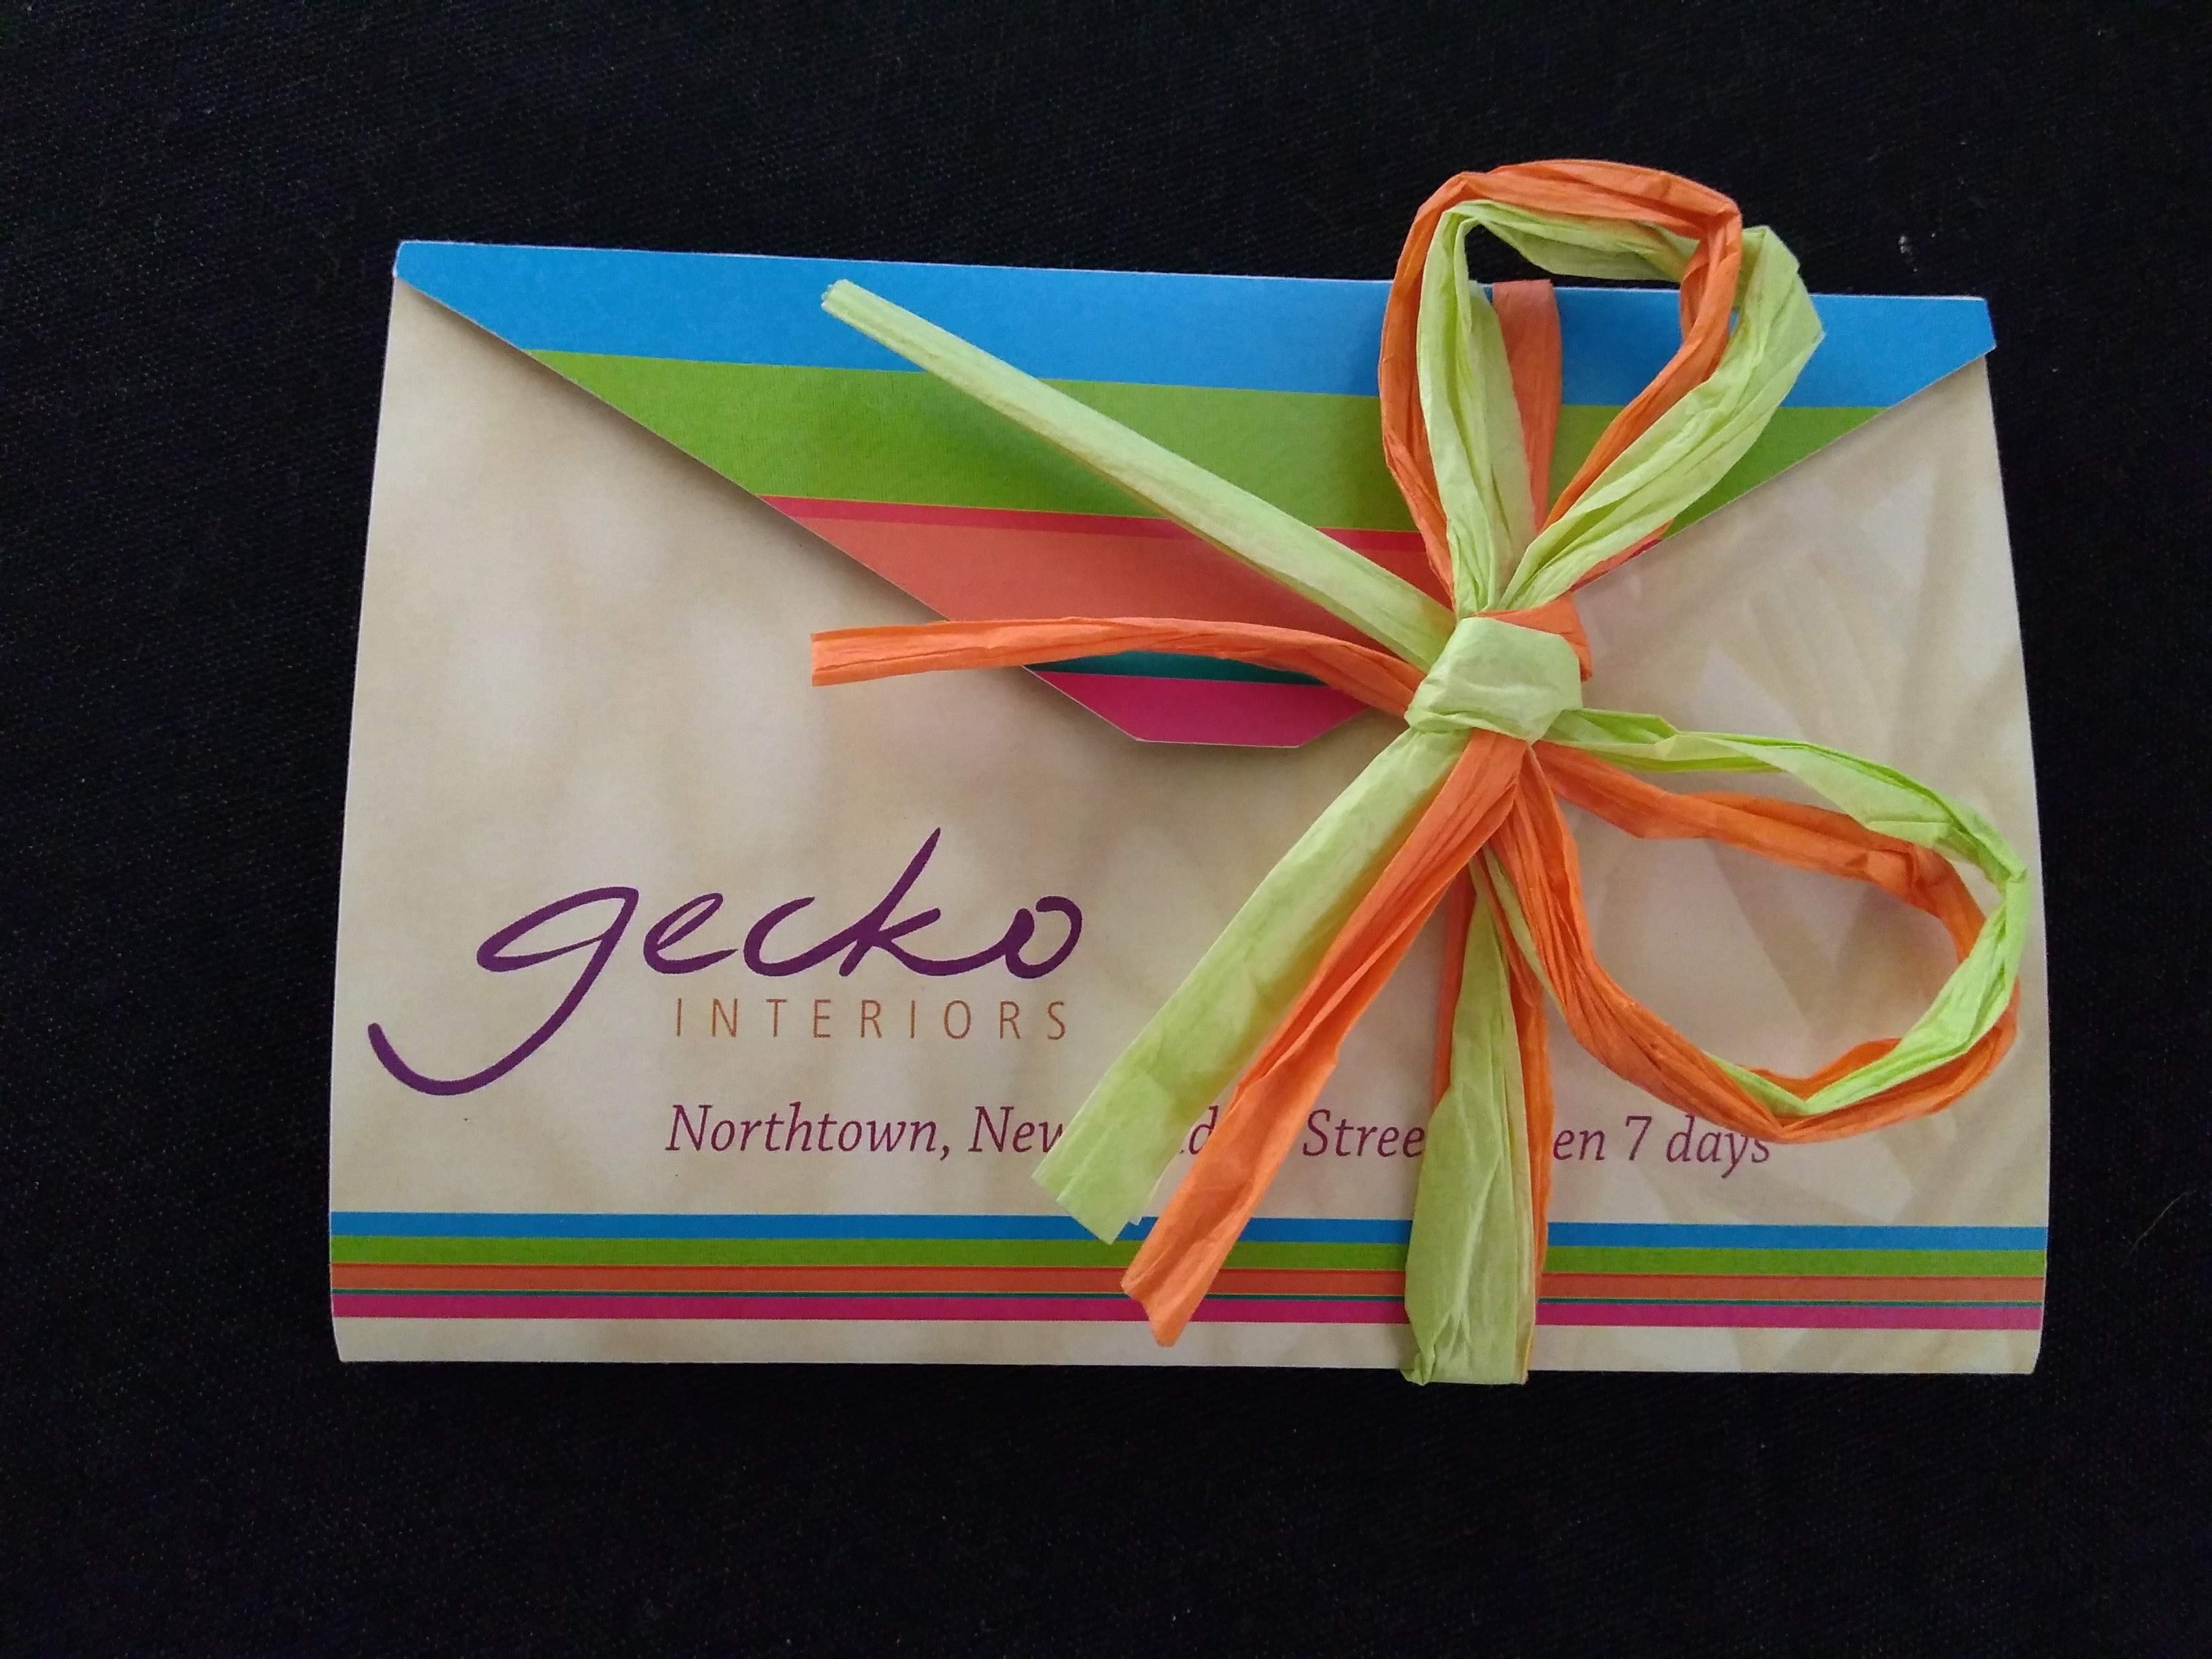 Voucher from Gecko Interiors